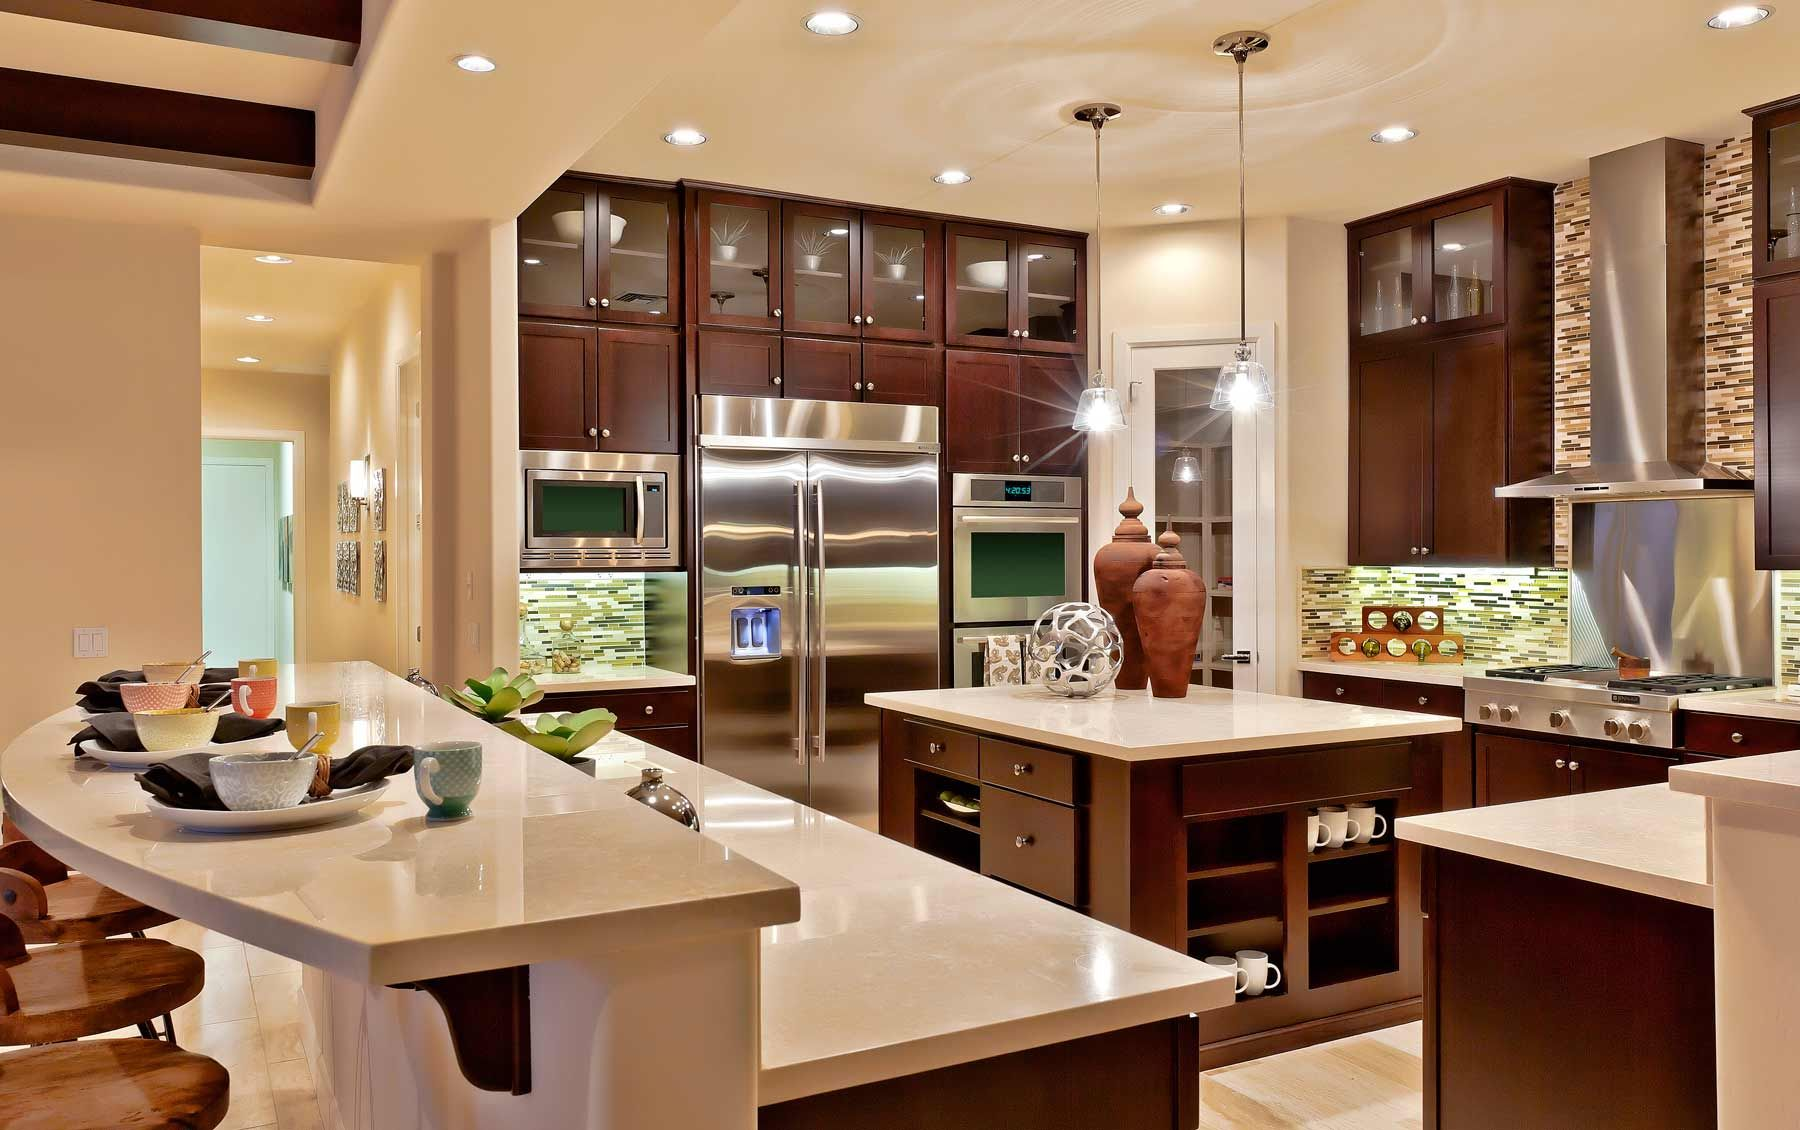 Toll Brothers Model Home Interior Design With Nice Kitchen Island And Beautiful Lighting For Attractive Model